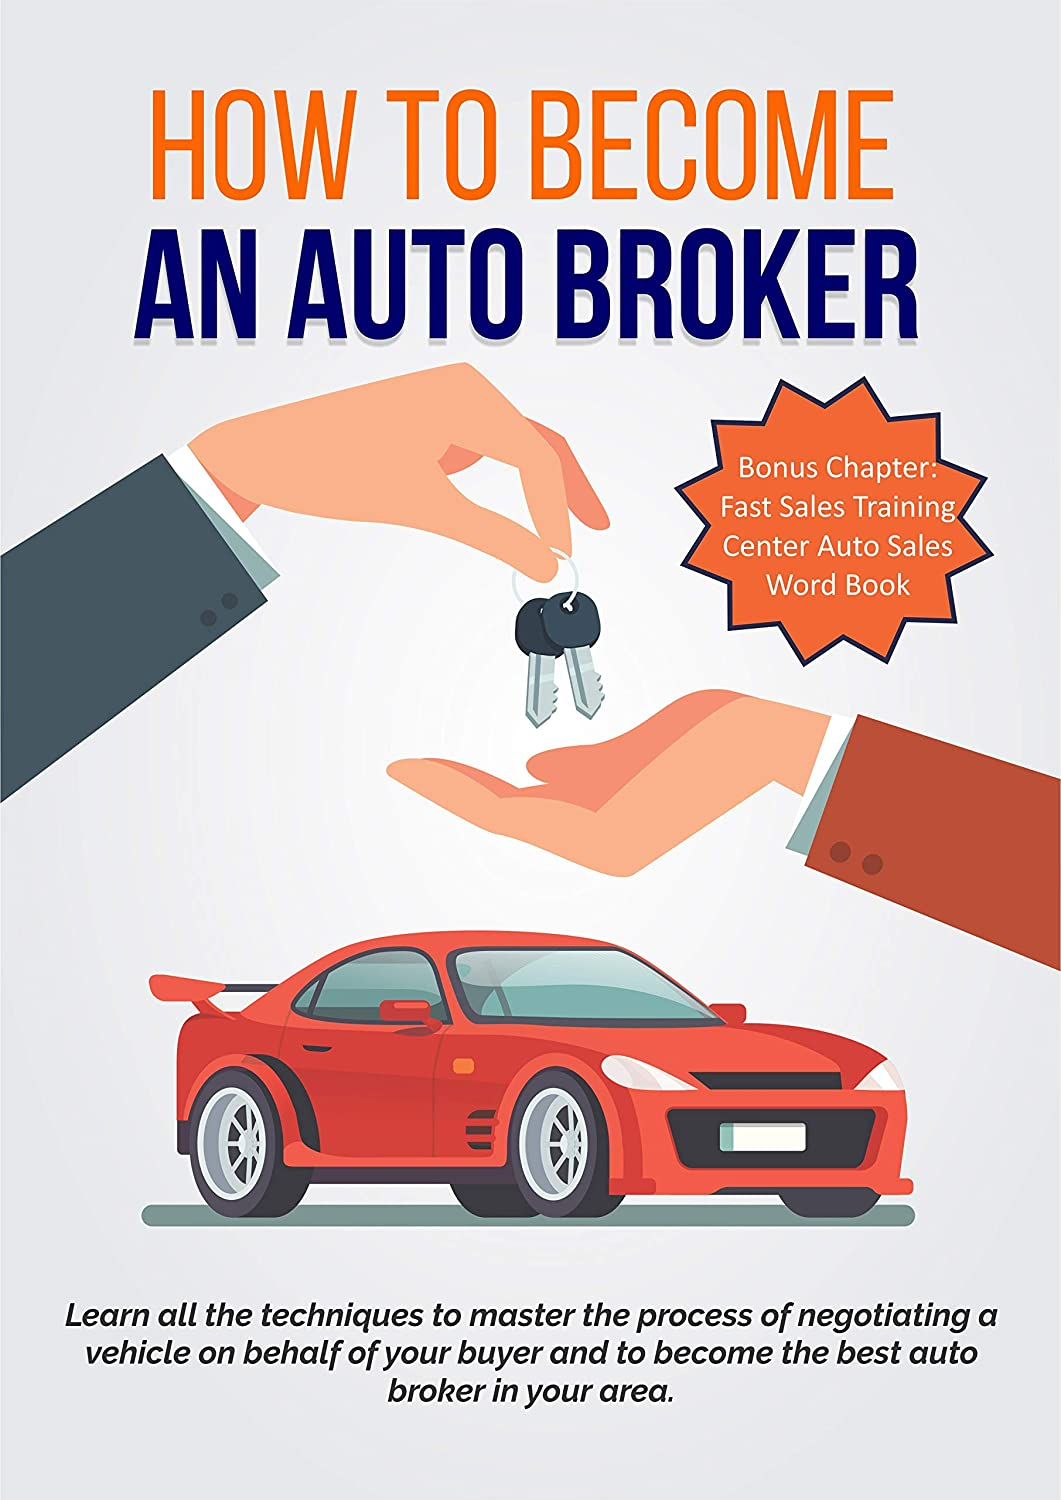 How To Become An Auto Broker Learn All The Techniques To Master The Process Of Negotiating A Vehicle On Behalf Of Your Buyer And To Become The Best Auto Broker In Your